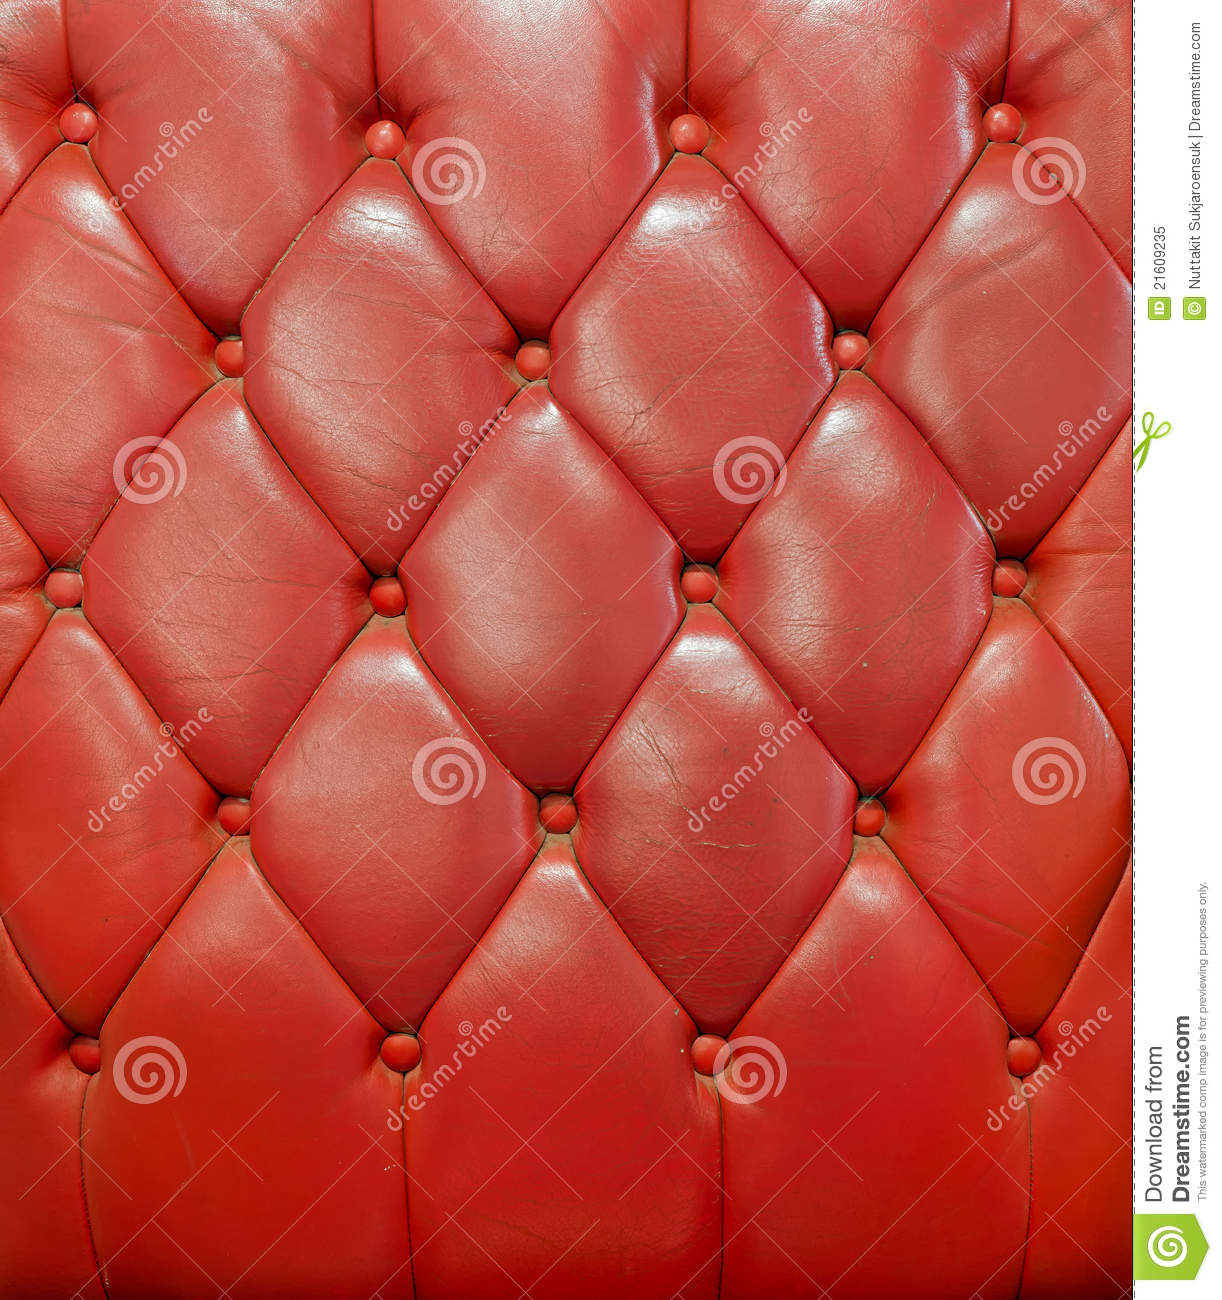 Retro Inflatable Sofa Texture Of Red Leather Vintage Sofa Stock Image Image Of Vintage